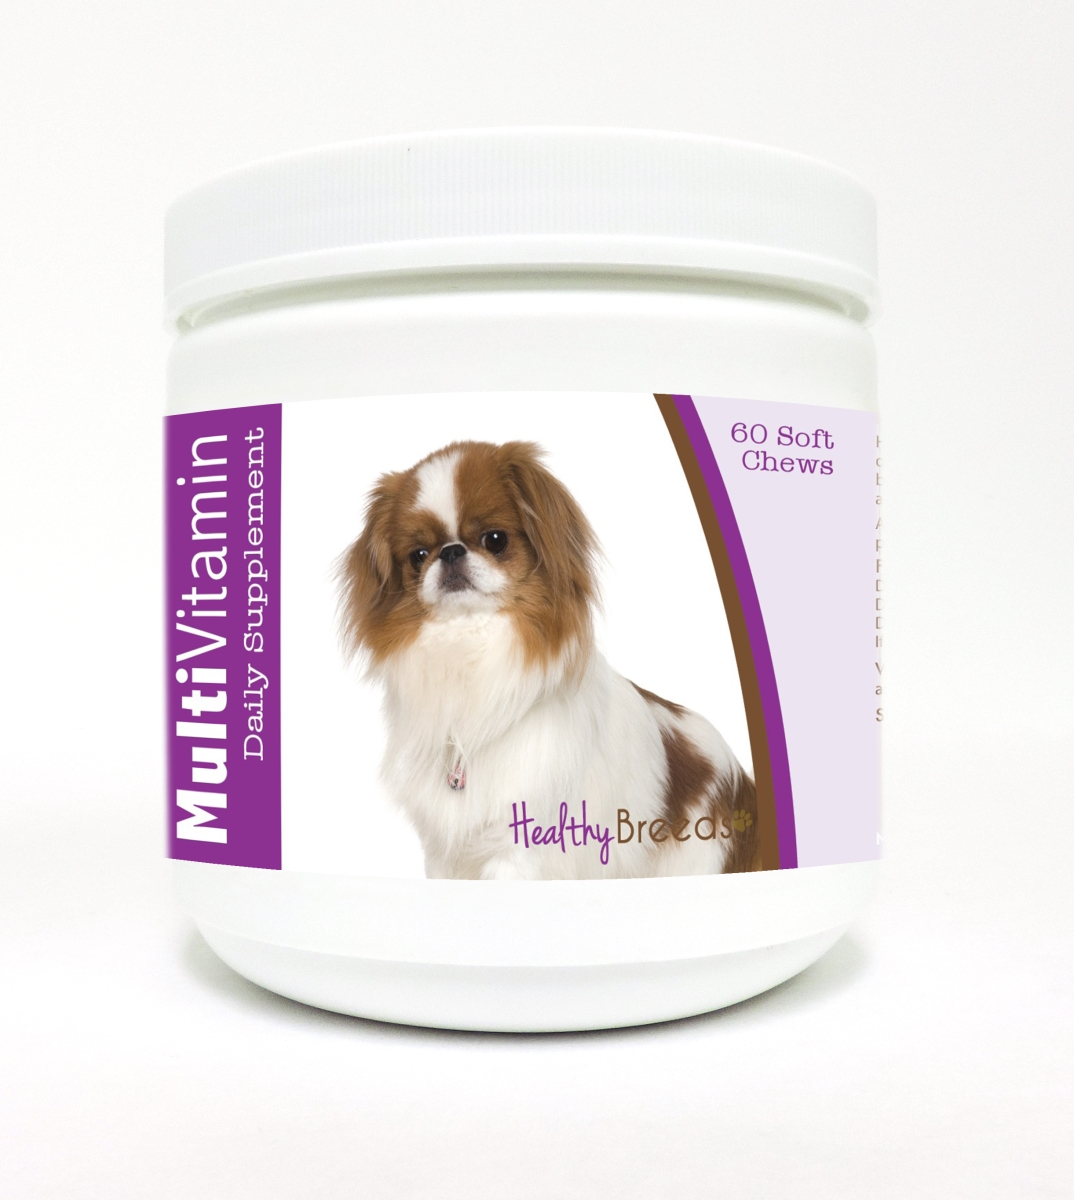 Healthy Breeds 840235109402 Japanese Chin Multi-Vitamin Soft Chews - 60 Count